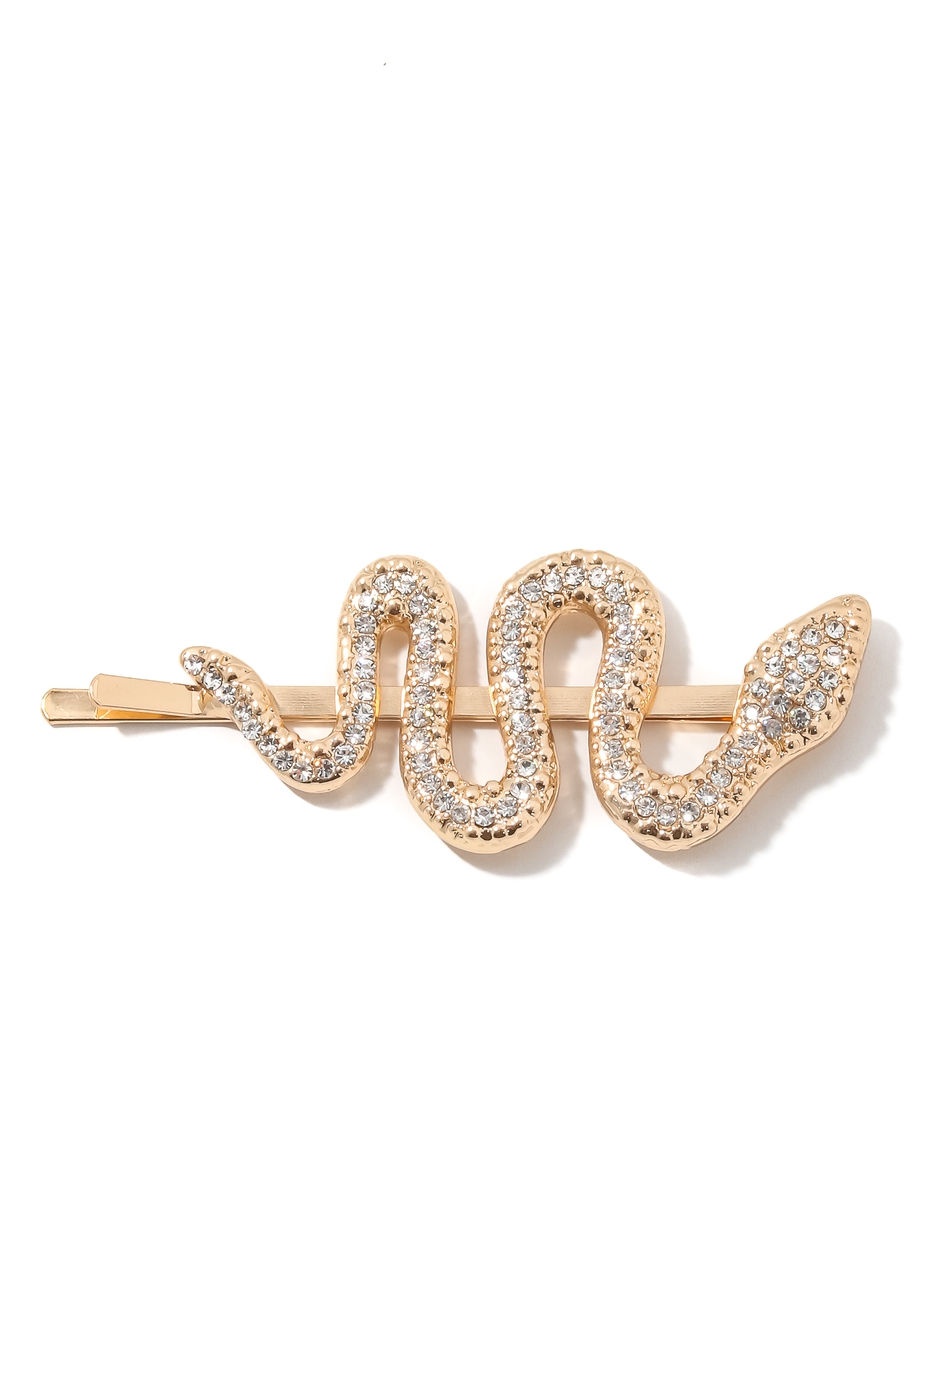 Studded Swirly Snake Hair Clip - orangeshine.com